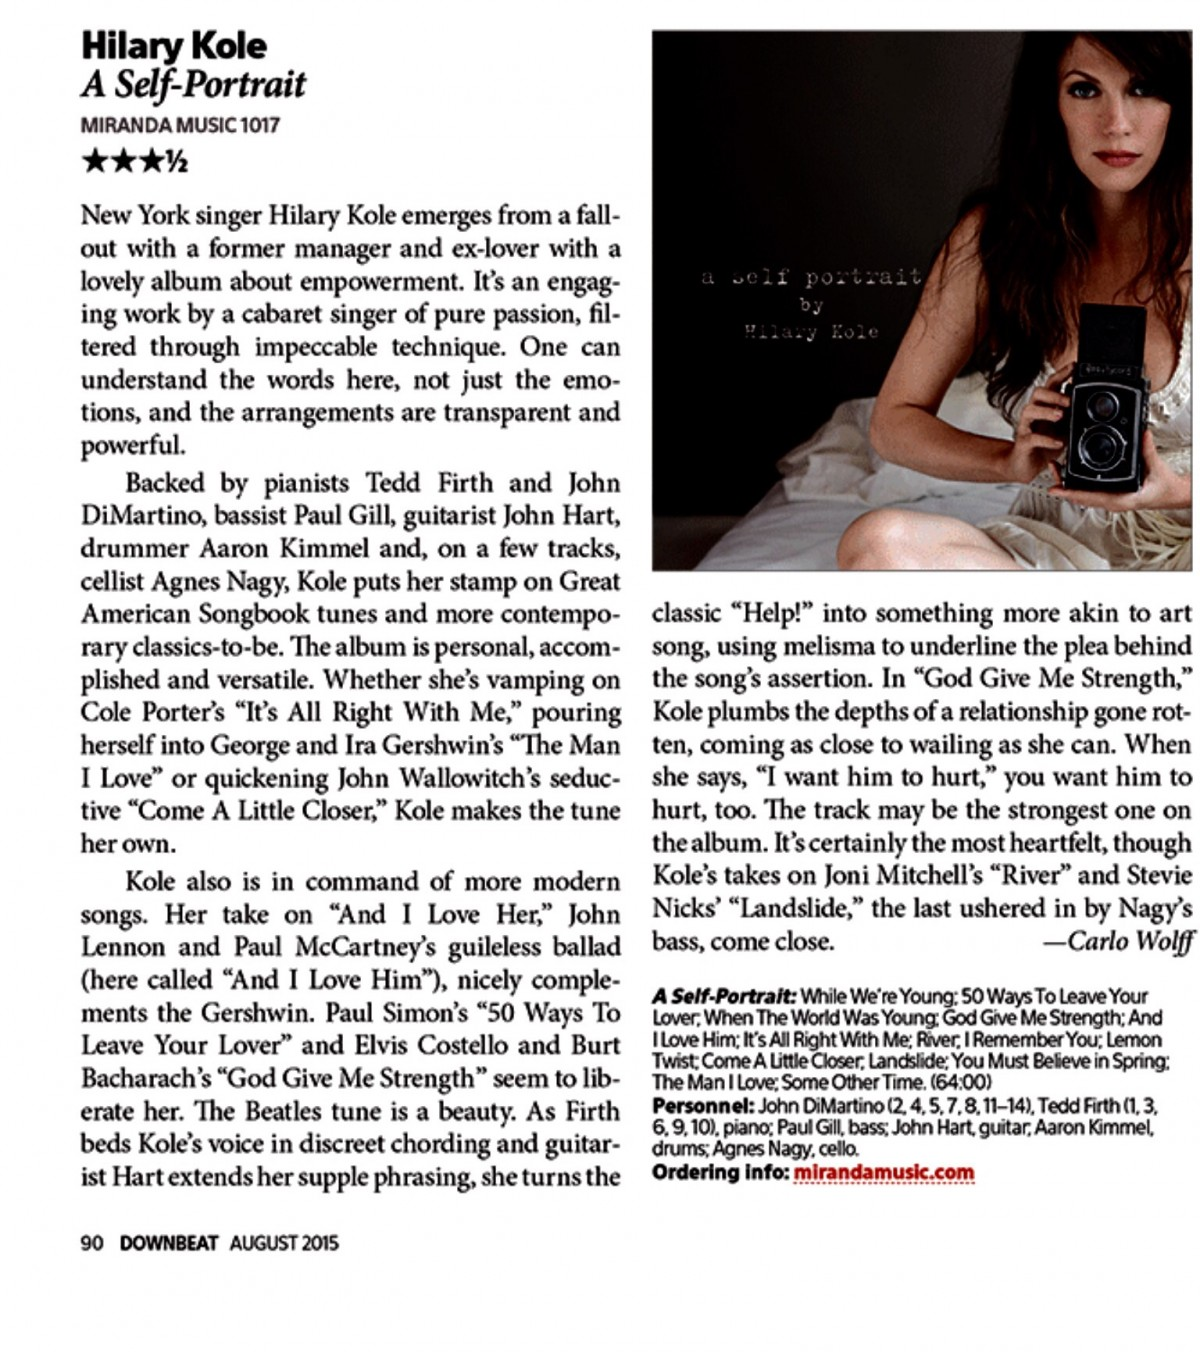 Downbeat Magazine review Aug 2015